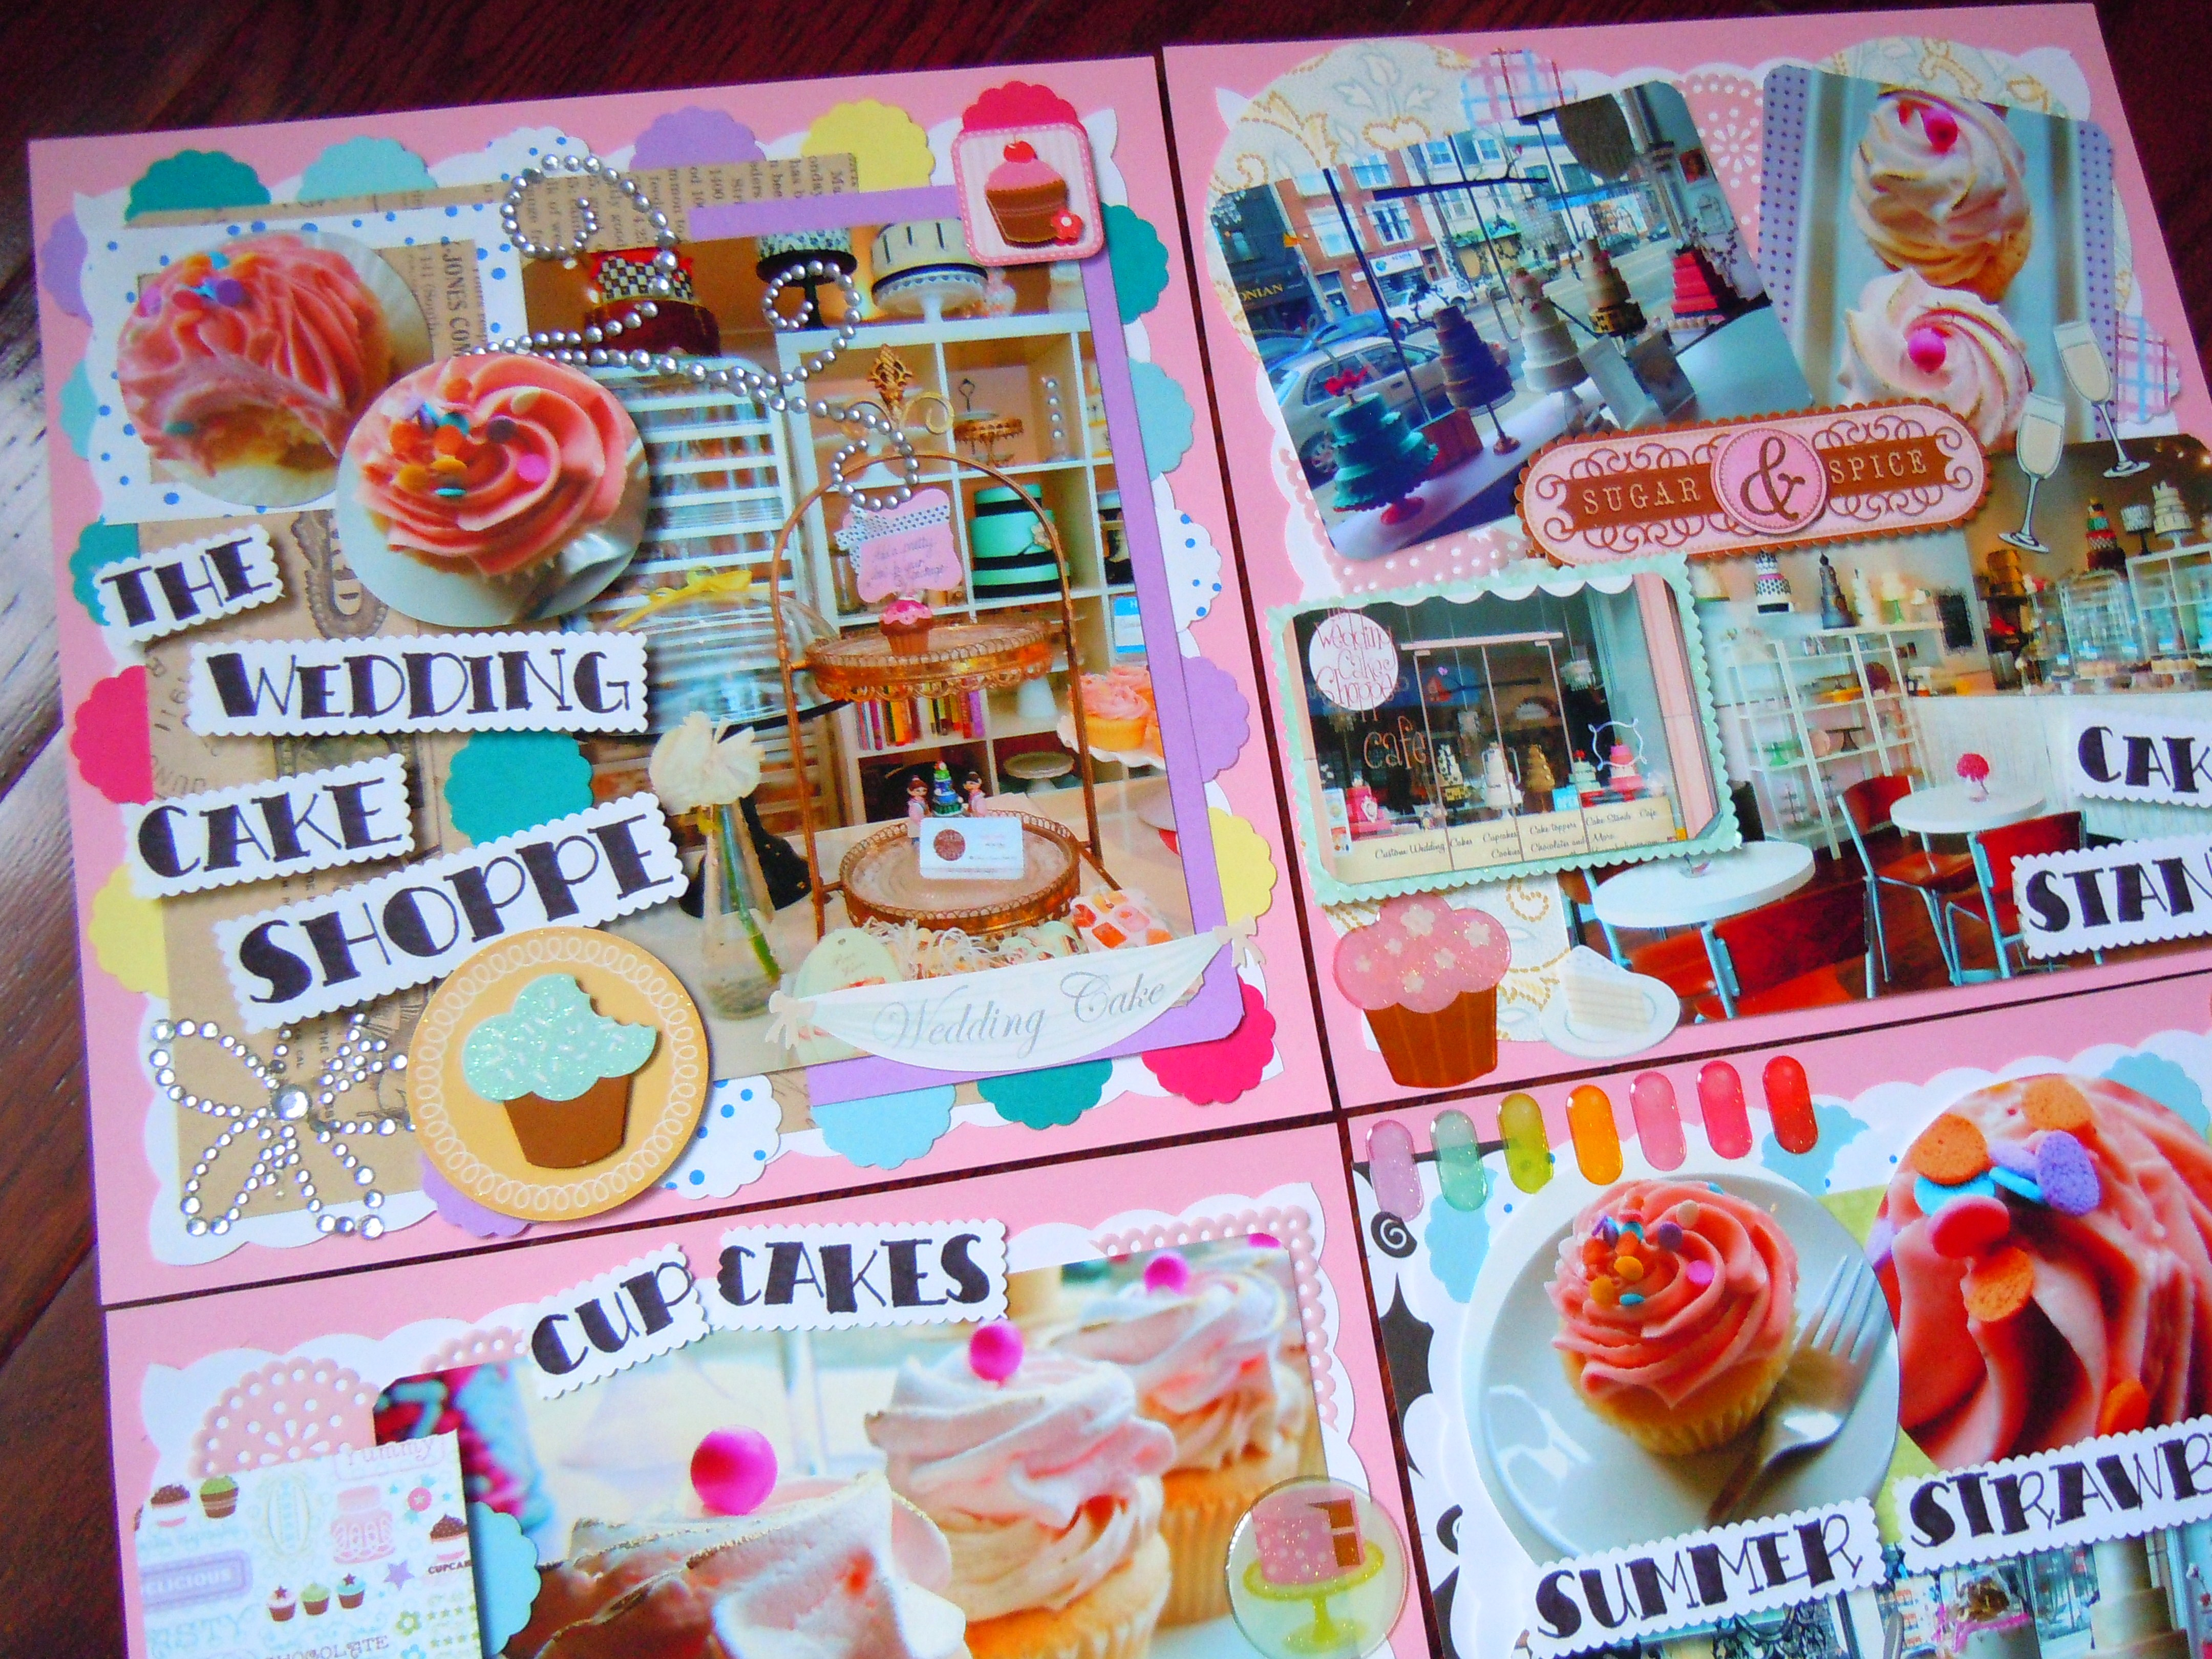 Scrapbook ideas for bff - The